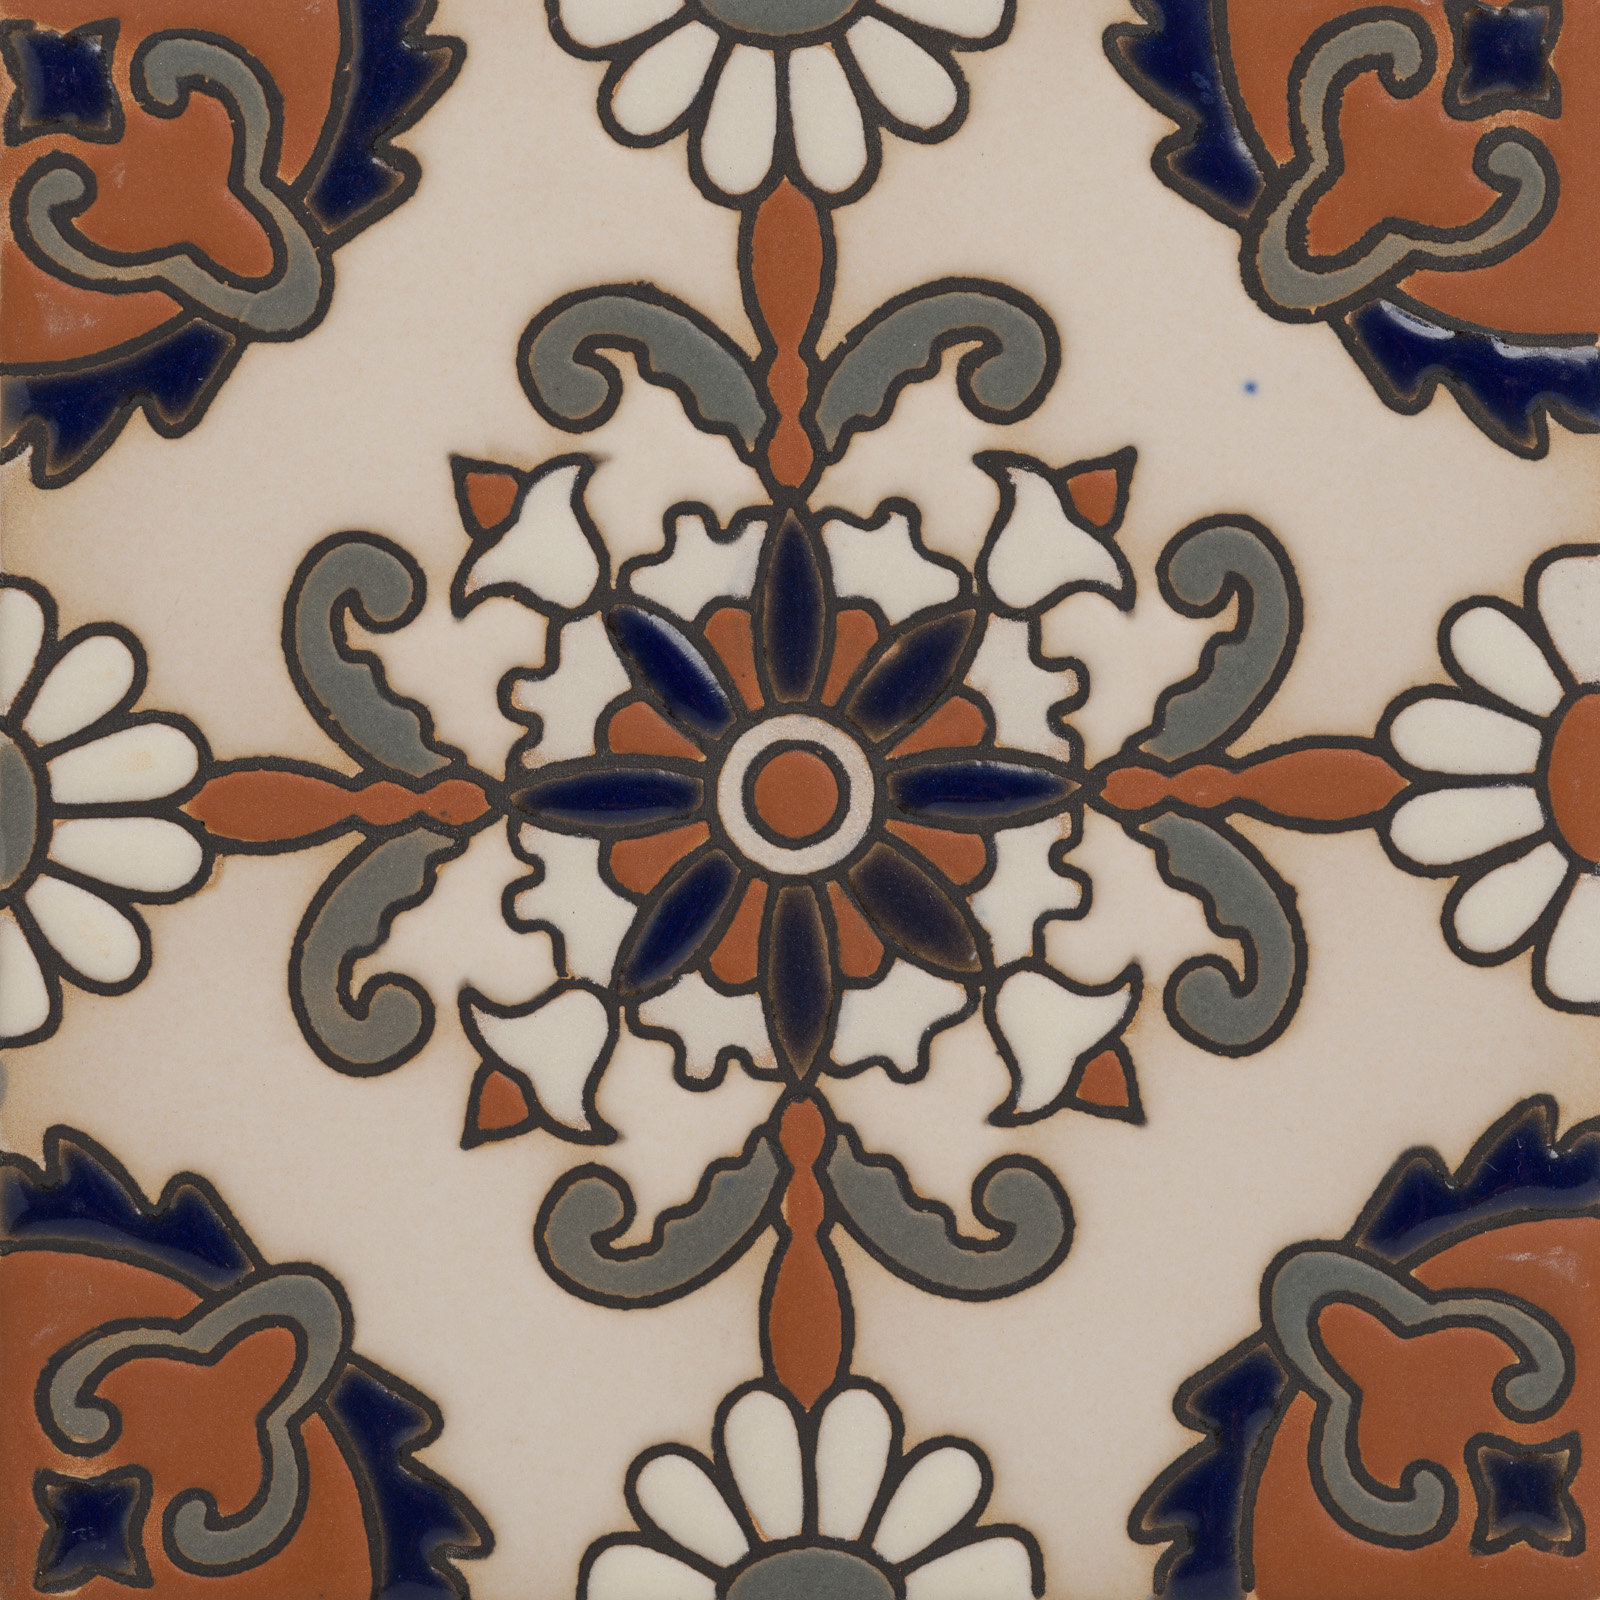 New york ceramic tile collection 1 emma wanless new york ceramic tile dailygadgetfo Images